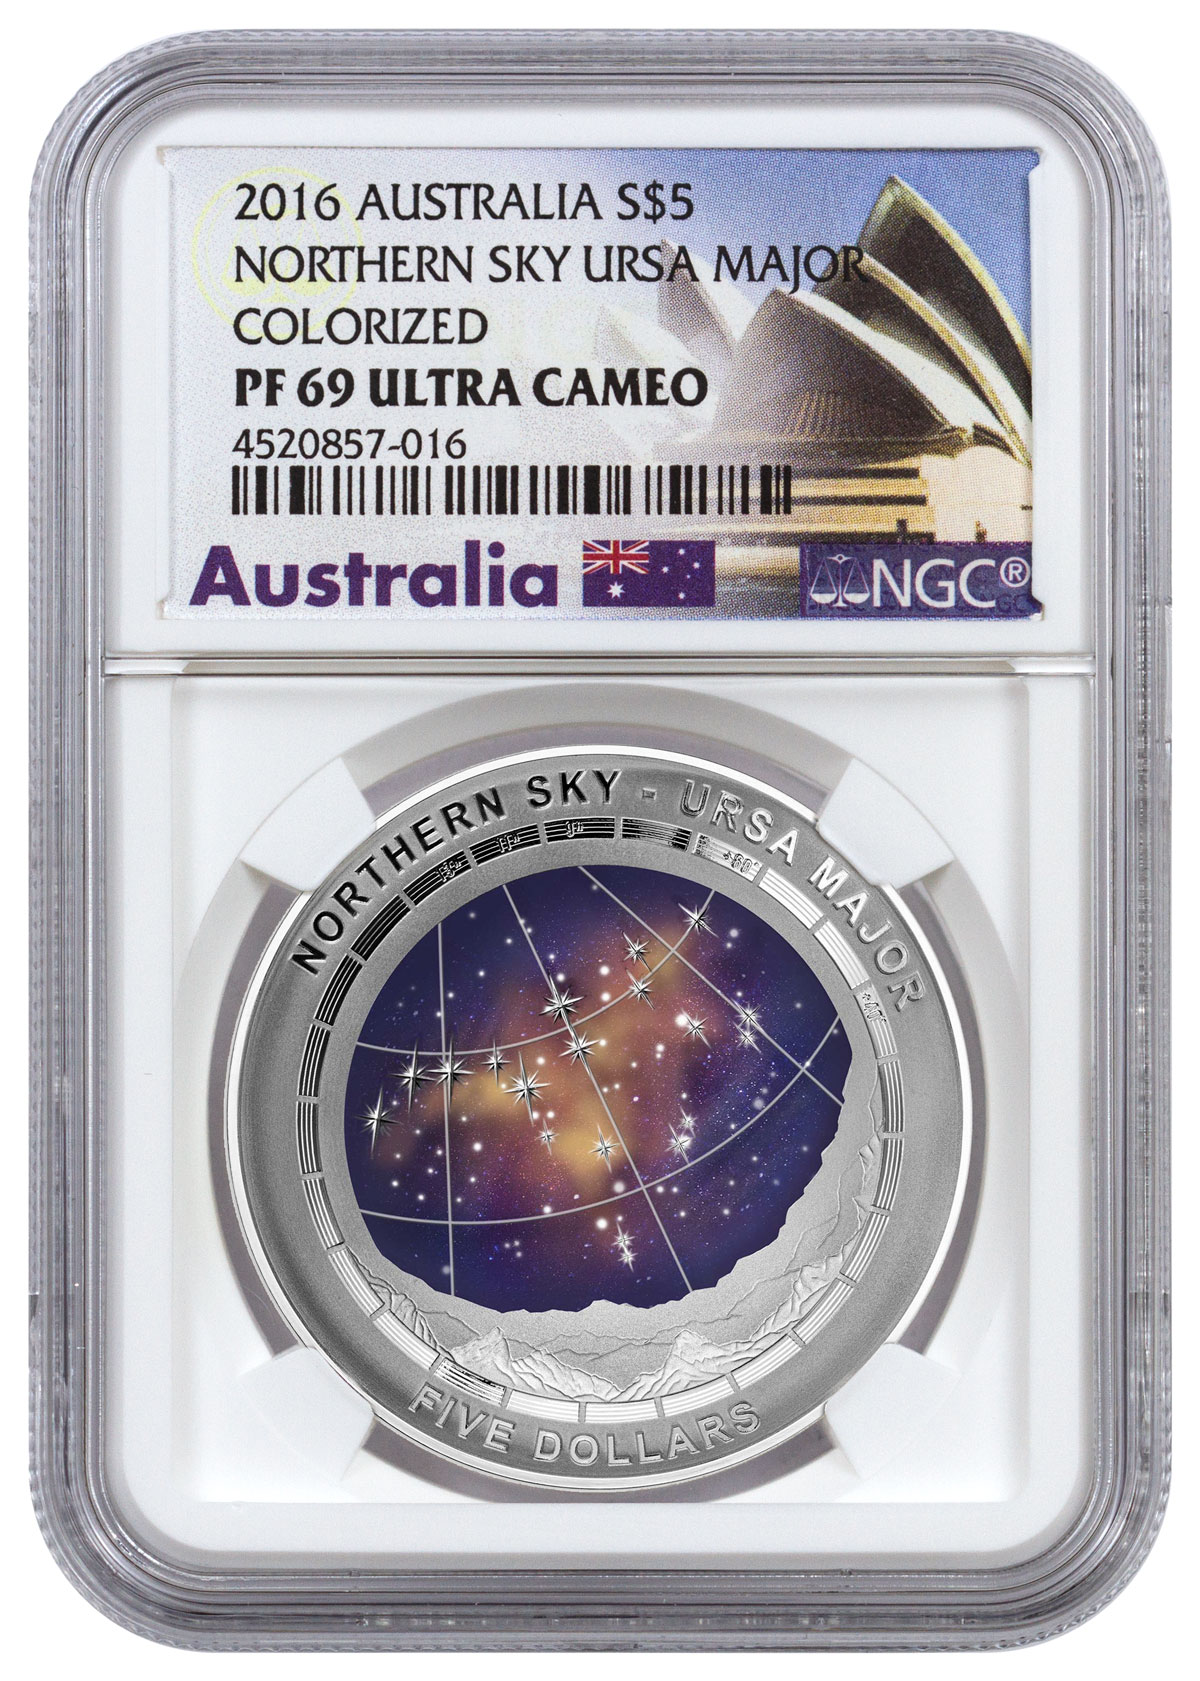 2016 Australia Northern Sky - Ursa Major Domed 1 oz Silver Colorized Proof $5 NGC PF69 UC (Exclusive Australia Label)